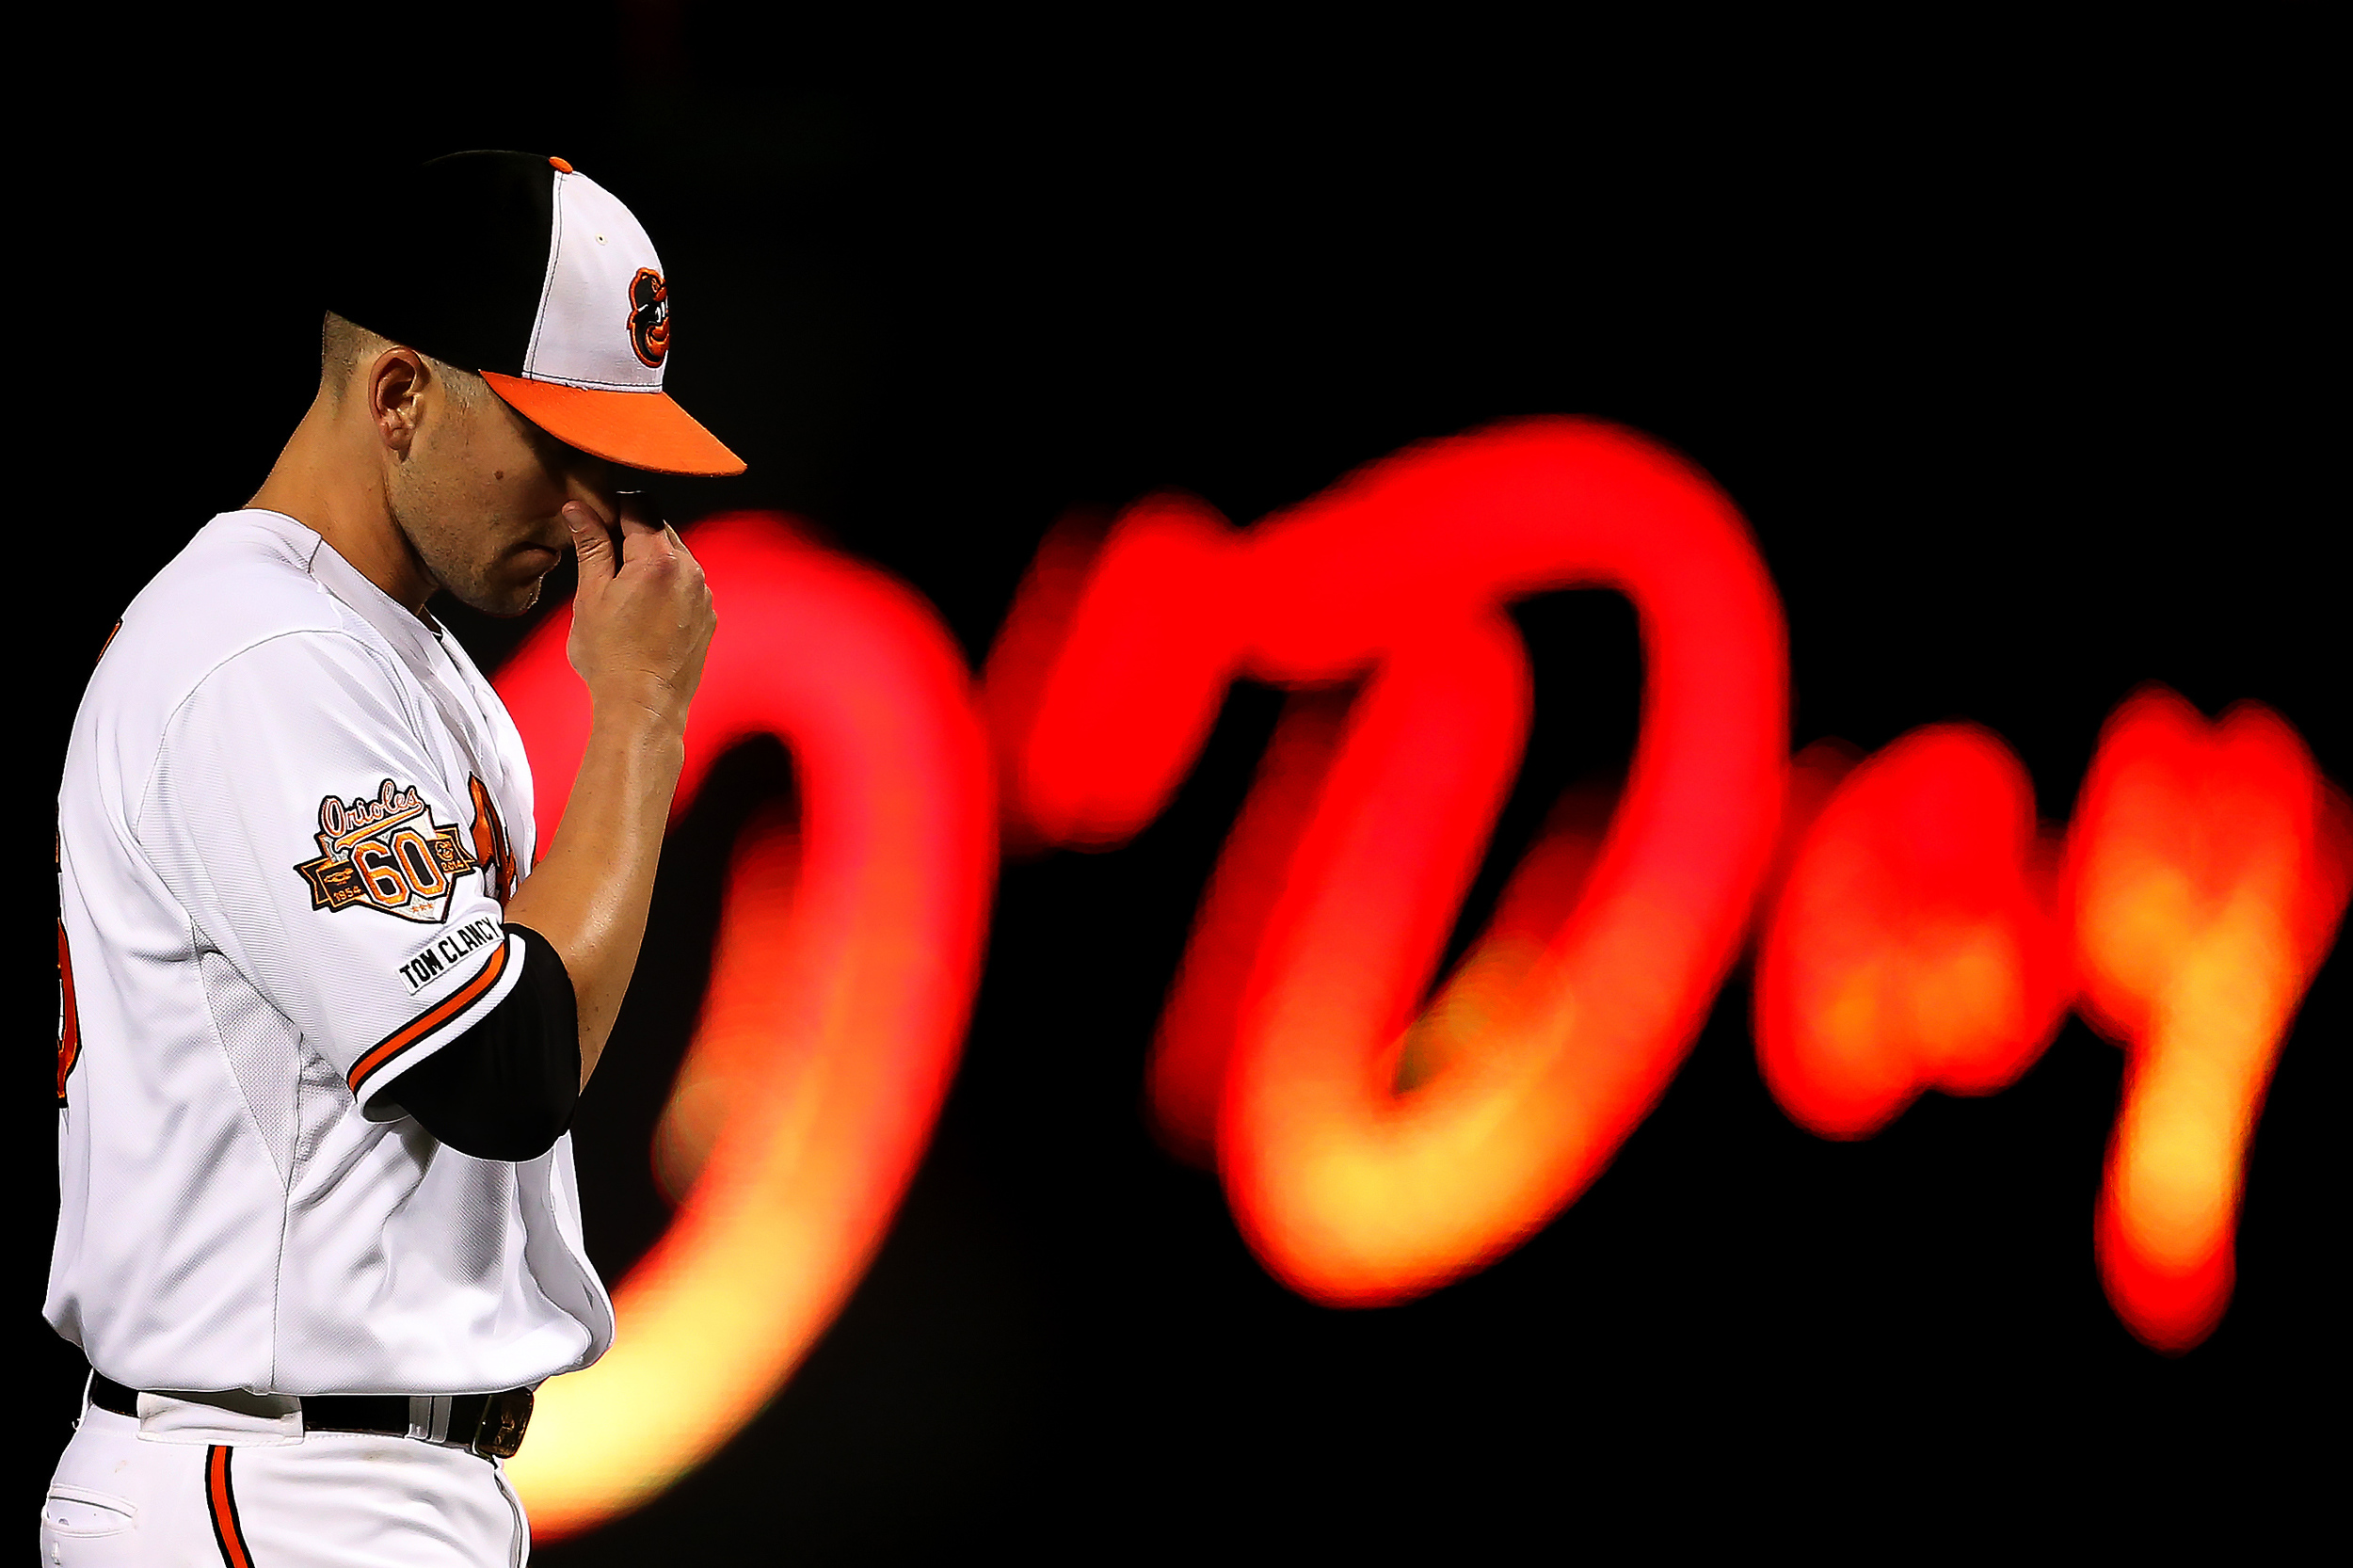 Pitcher Darren O'Day of the Baltimore Orioles walks off the field during a MLB game against the Toronto Blue Jays on Sept. 16, 2014 at Oriole Park at Camden Yards in Baltimore, Maryland.